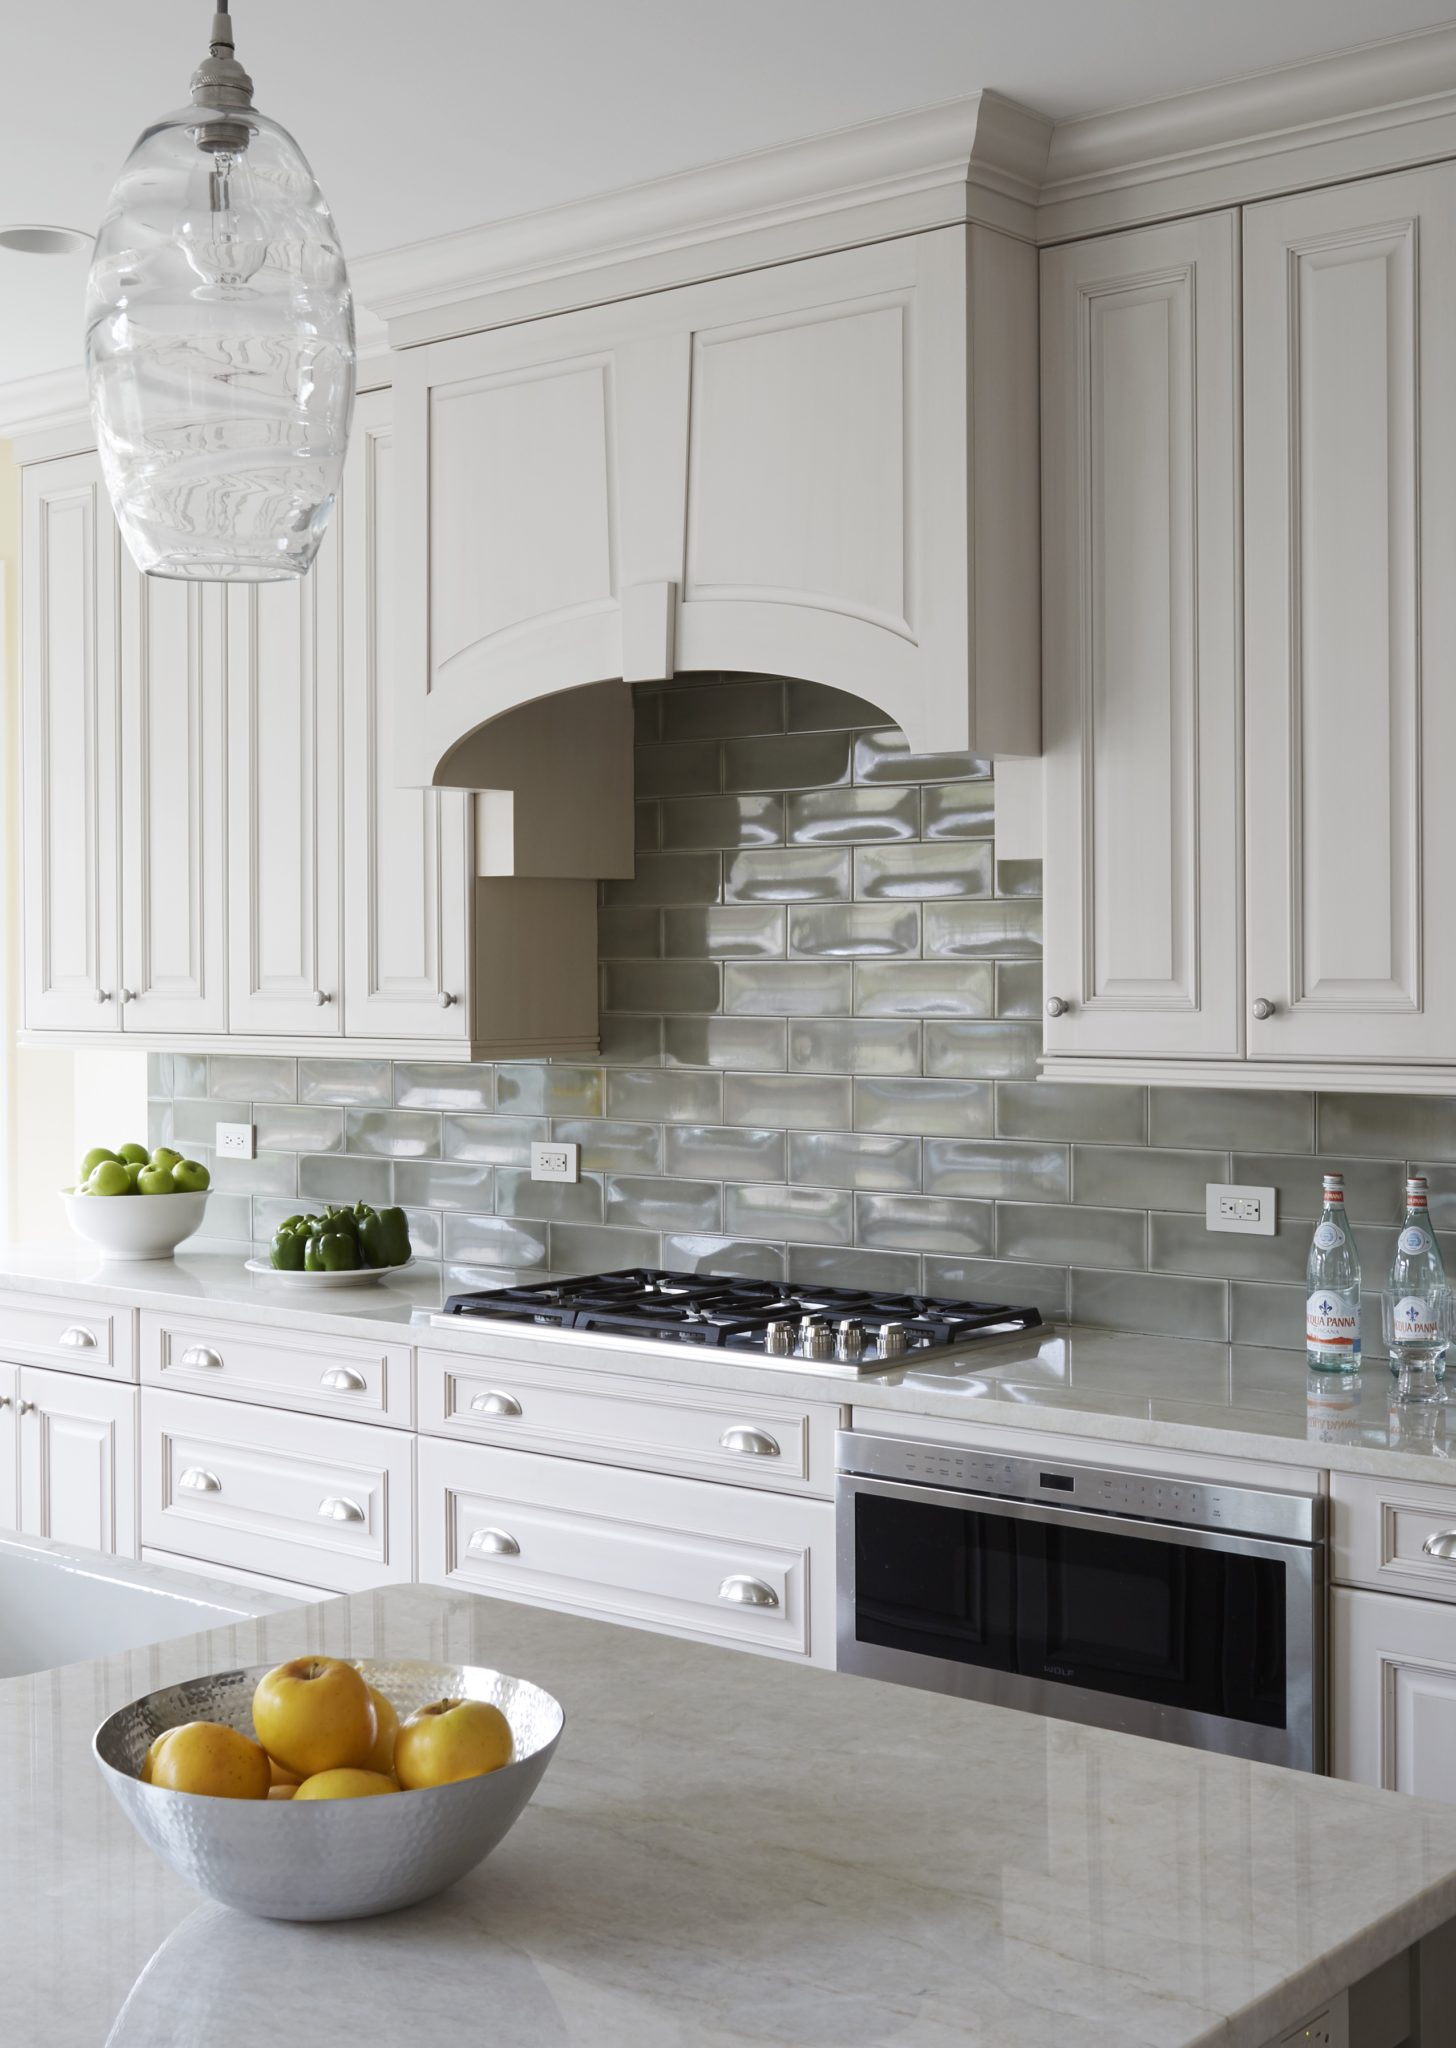 Range hood detail with clay tile backsplash by Orren Pickell Building Group